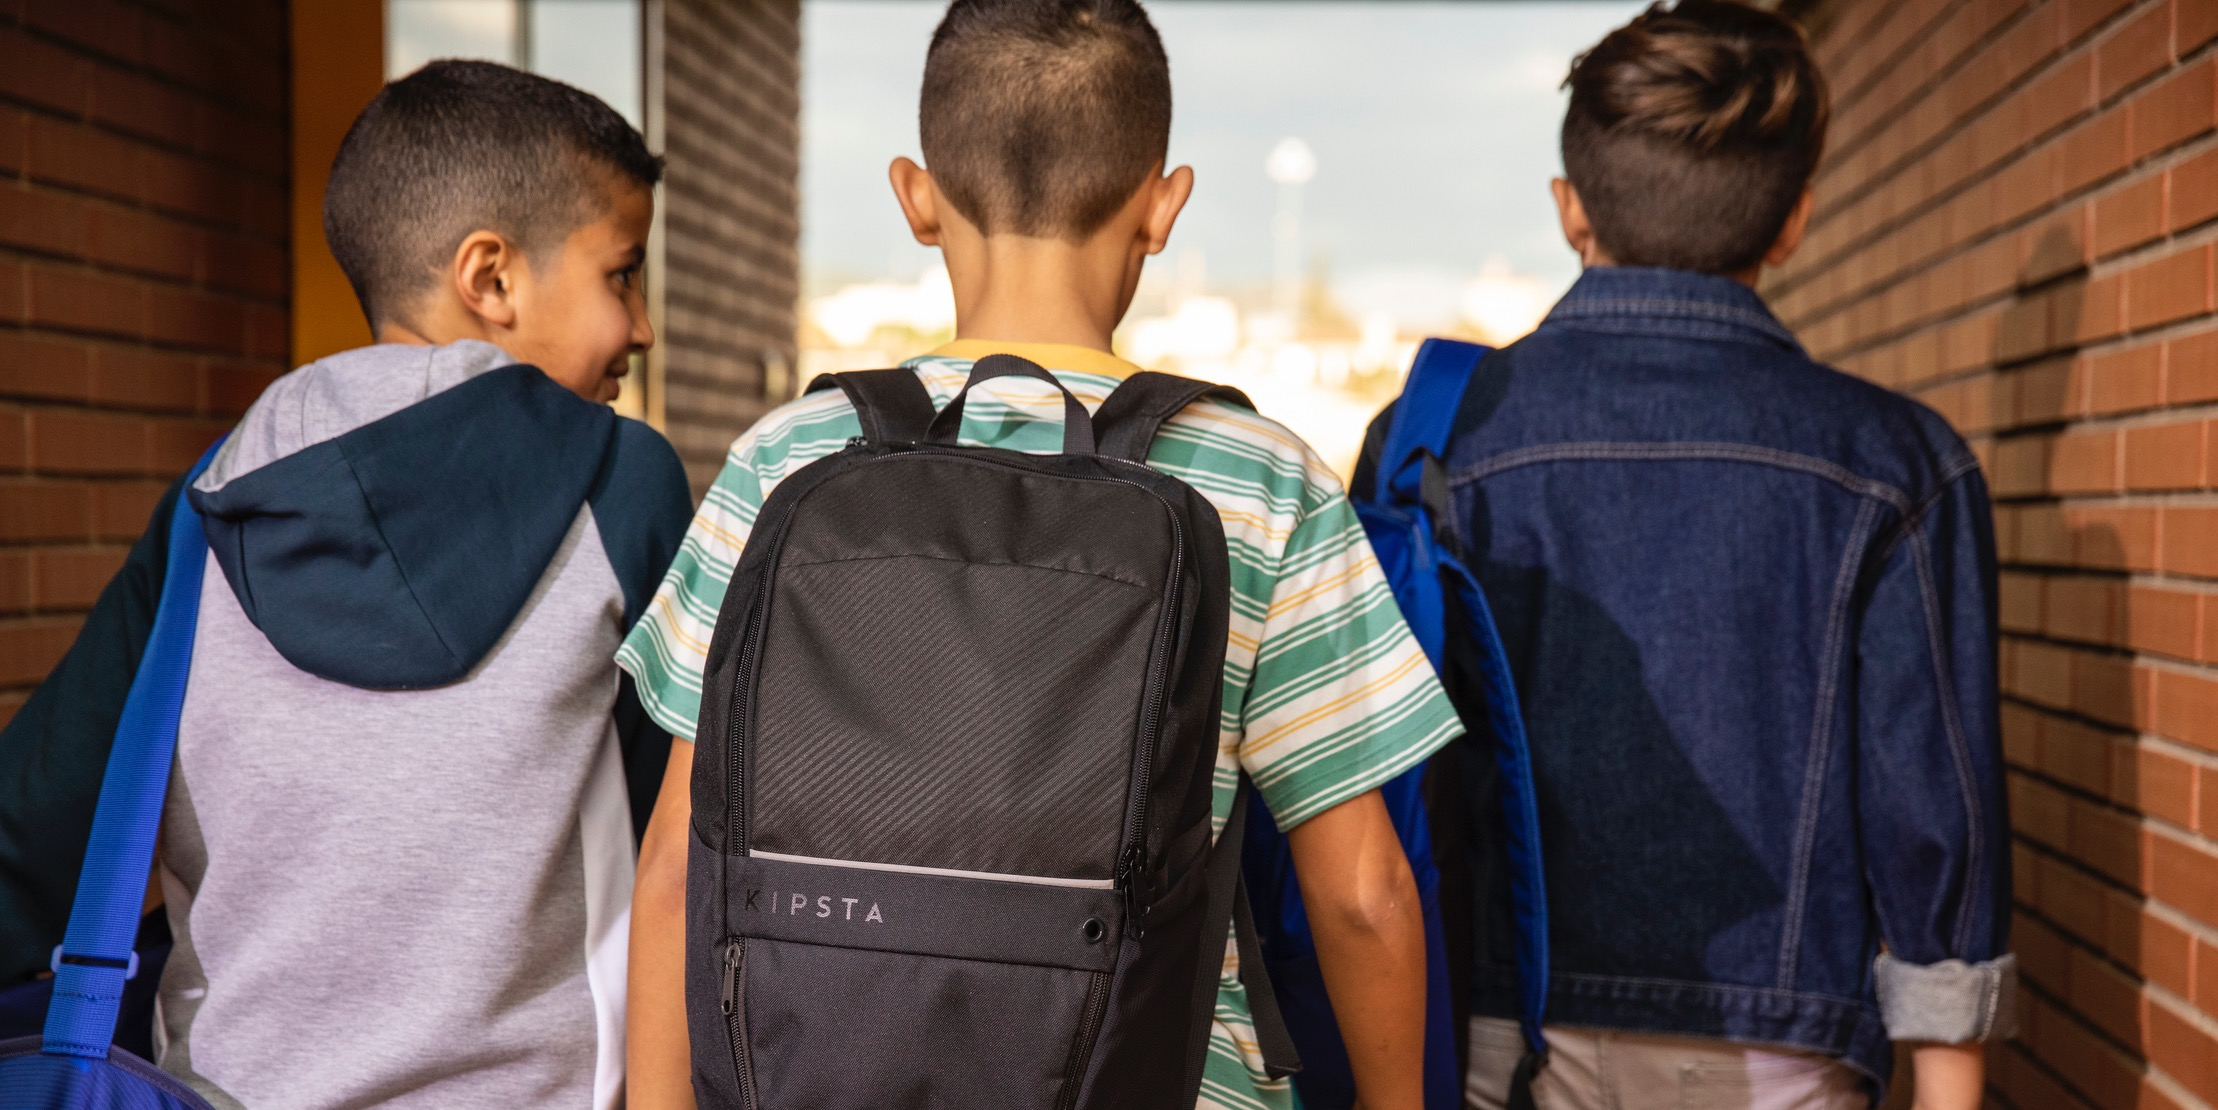 Our 9 Best Backpacks For School